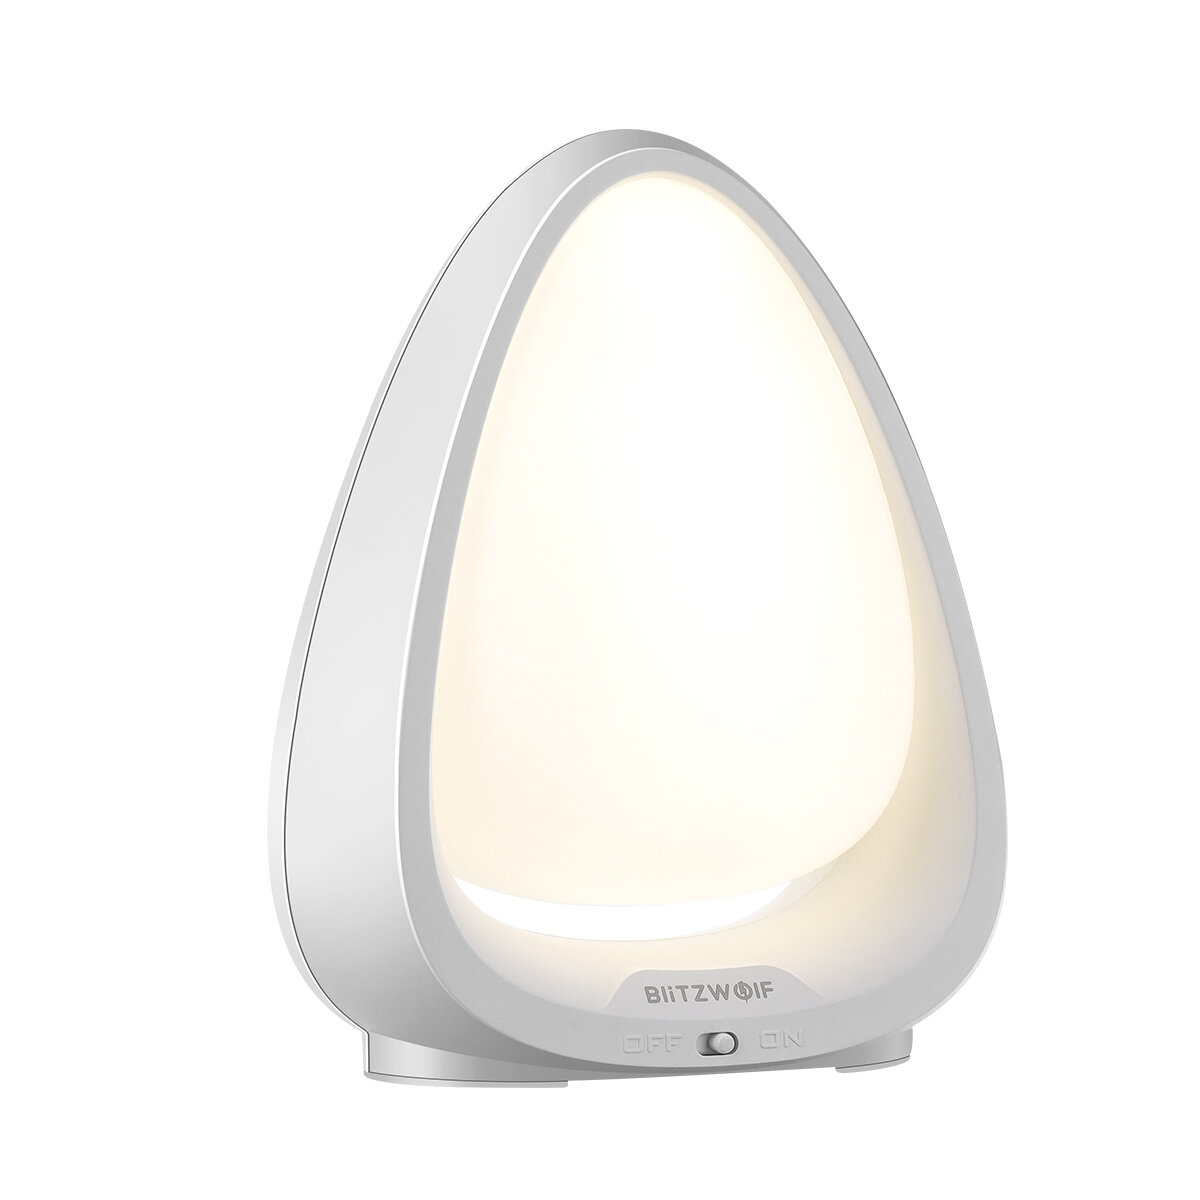 BlitzWolf® BW-LT9 Touch Switch Color Night Light 4000K Color Temperature 85 Lumens 240° Lighting Angle Lamp